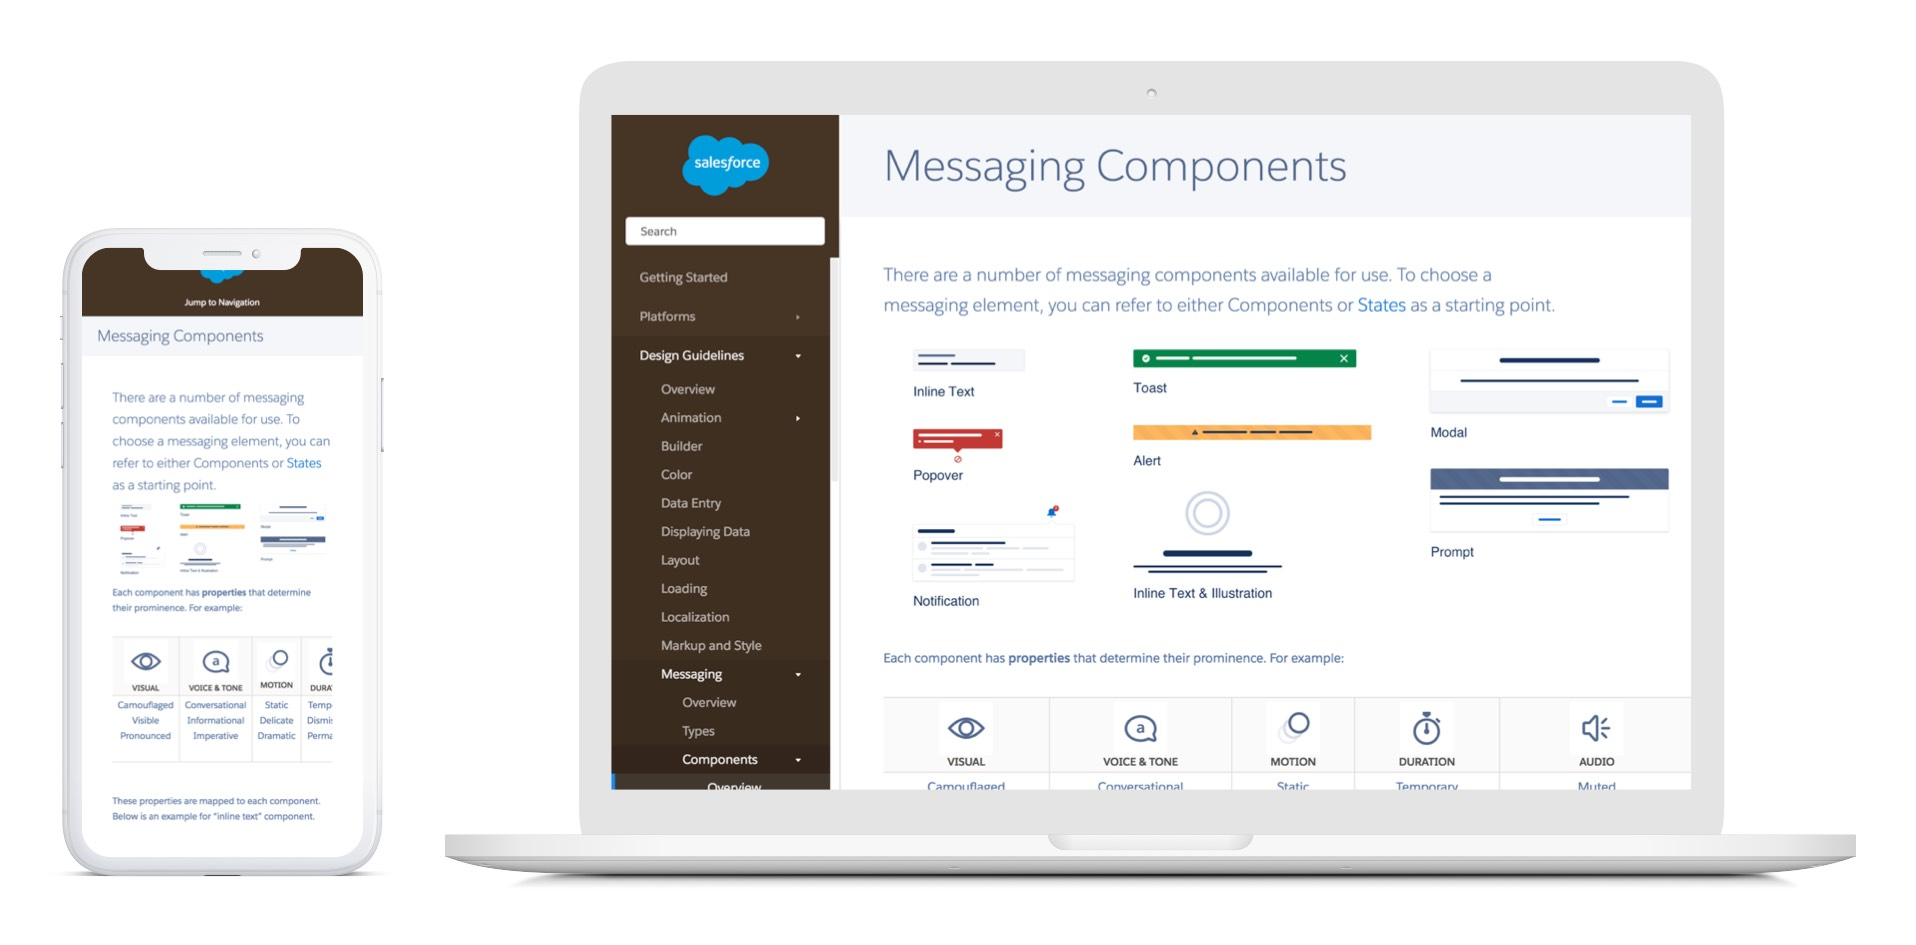 Integrating the messaging framework back into Salesforce's Lightning Design System